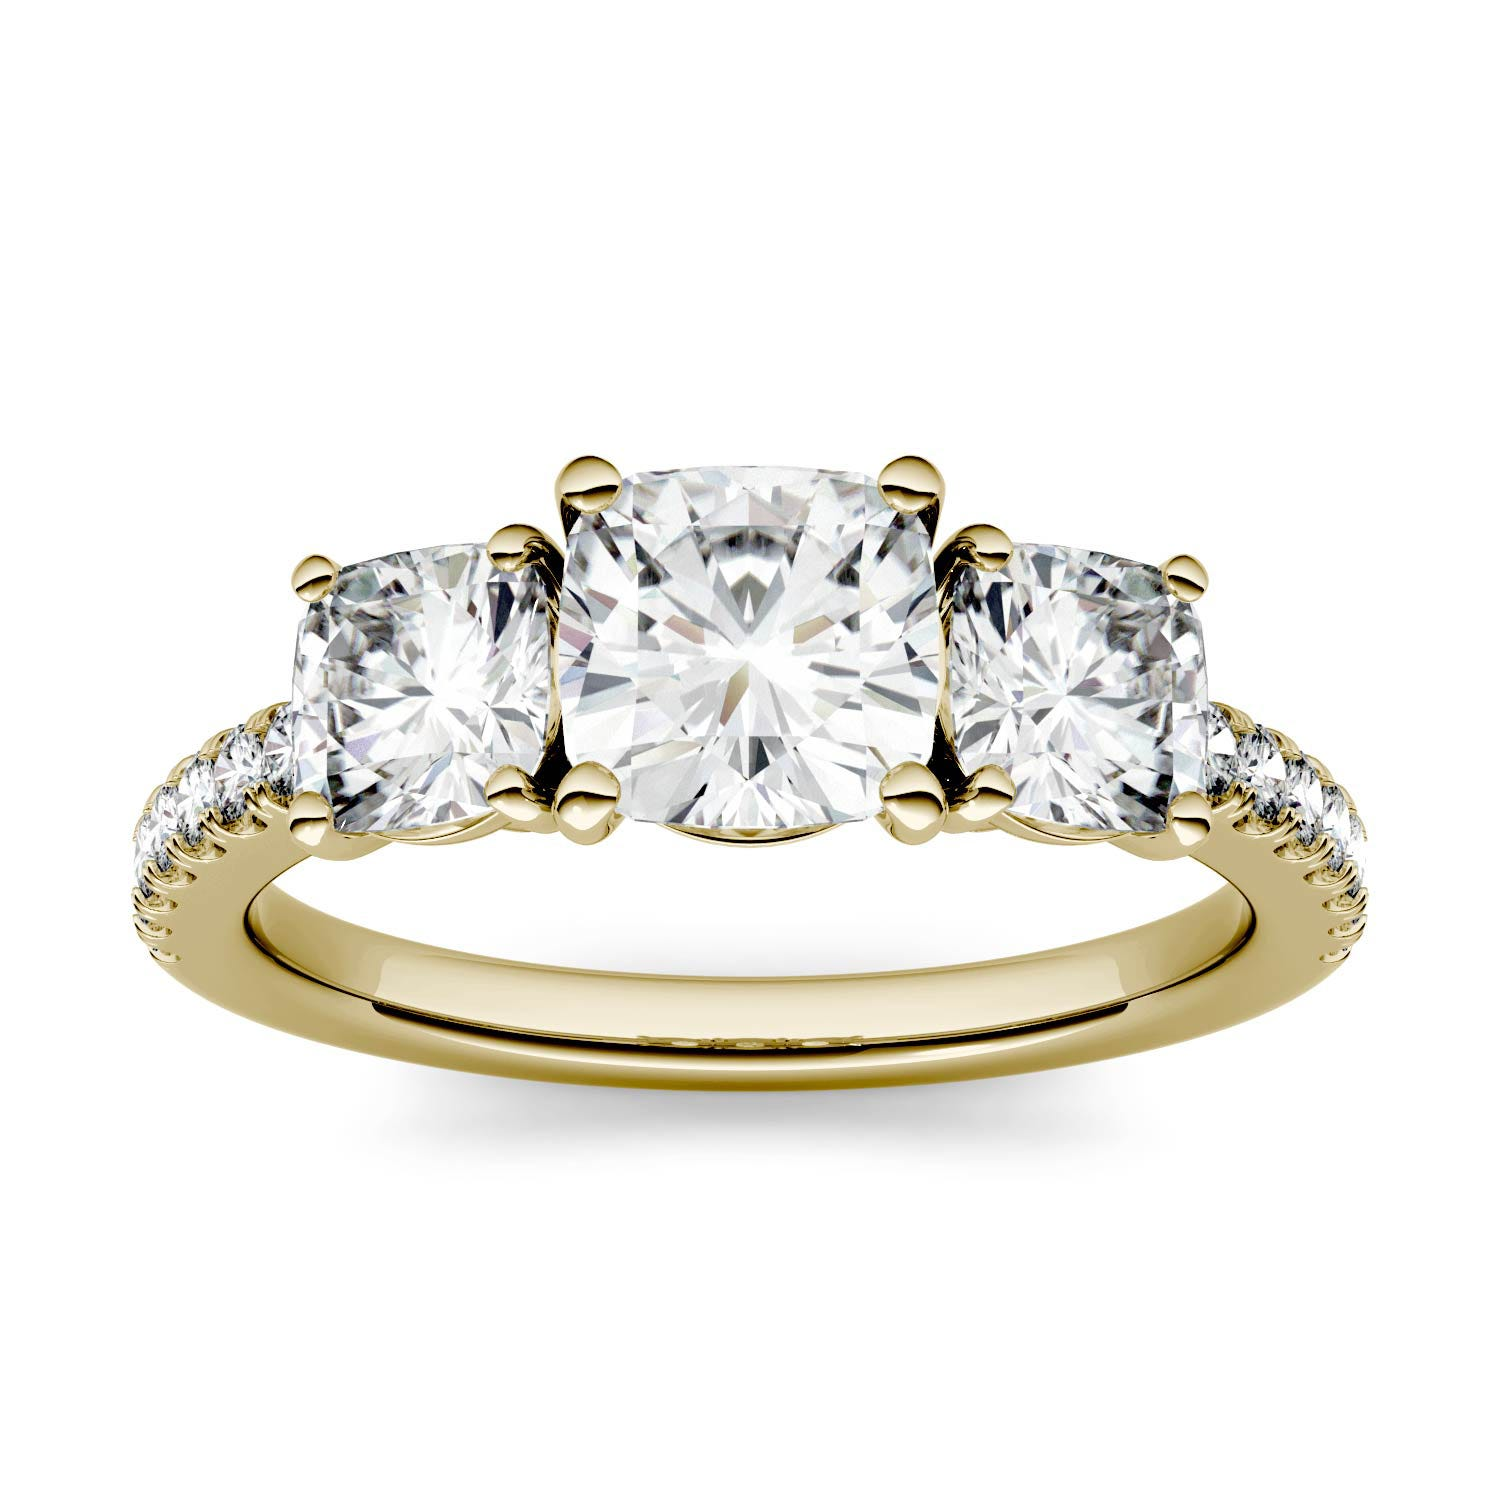 Cushion 1.91cttw DEW Moissanite Three Stone with Side Accents Ring in 14K Yellow Gold 500117